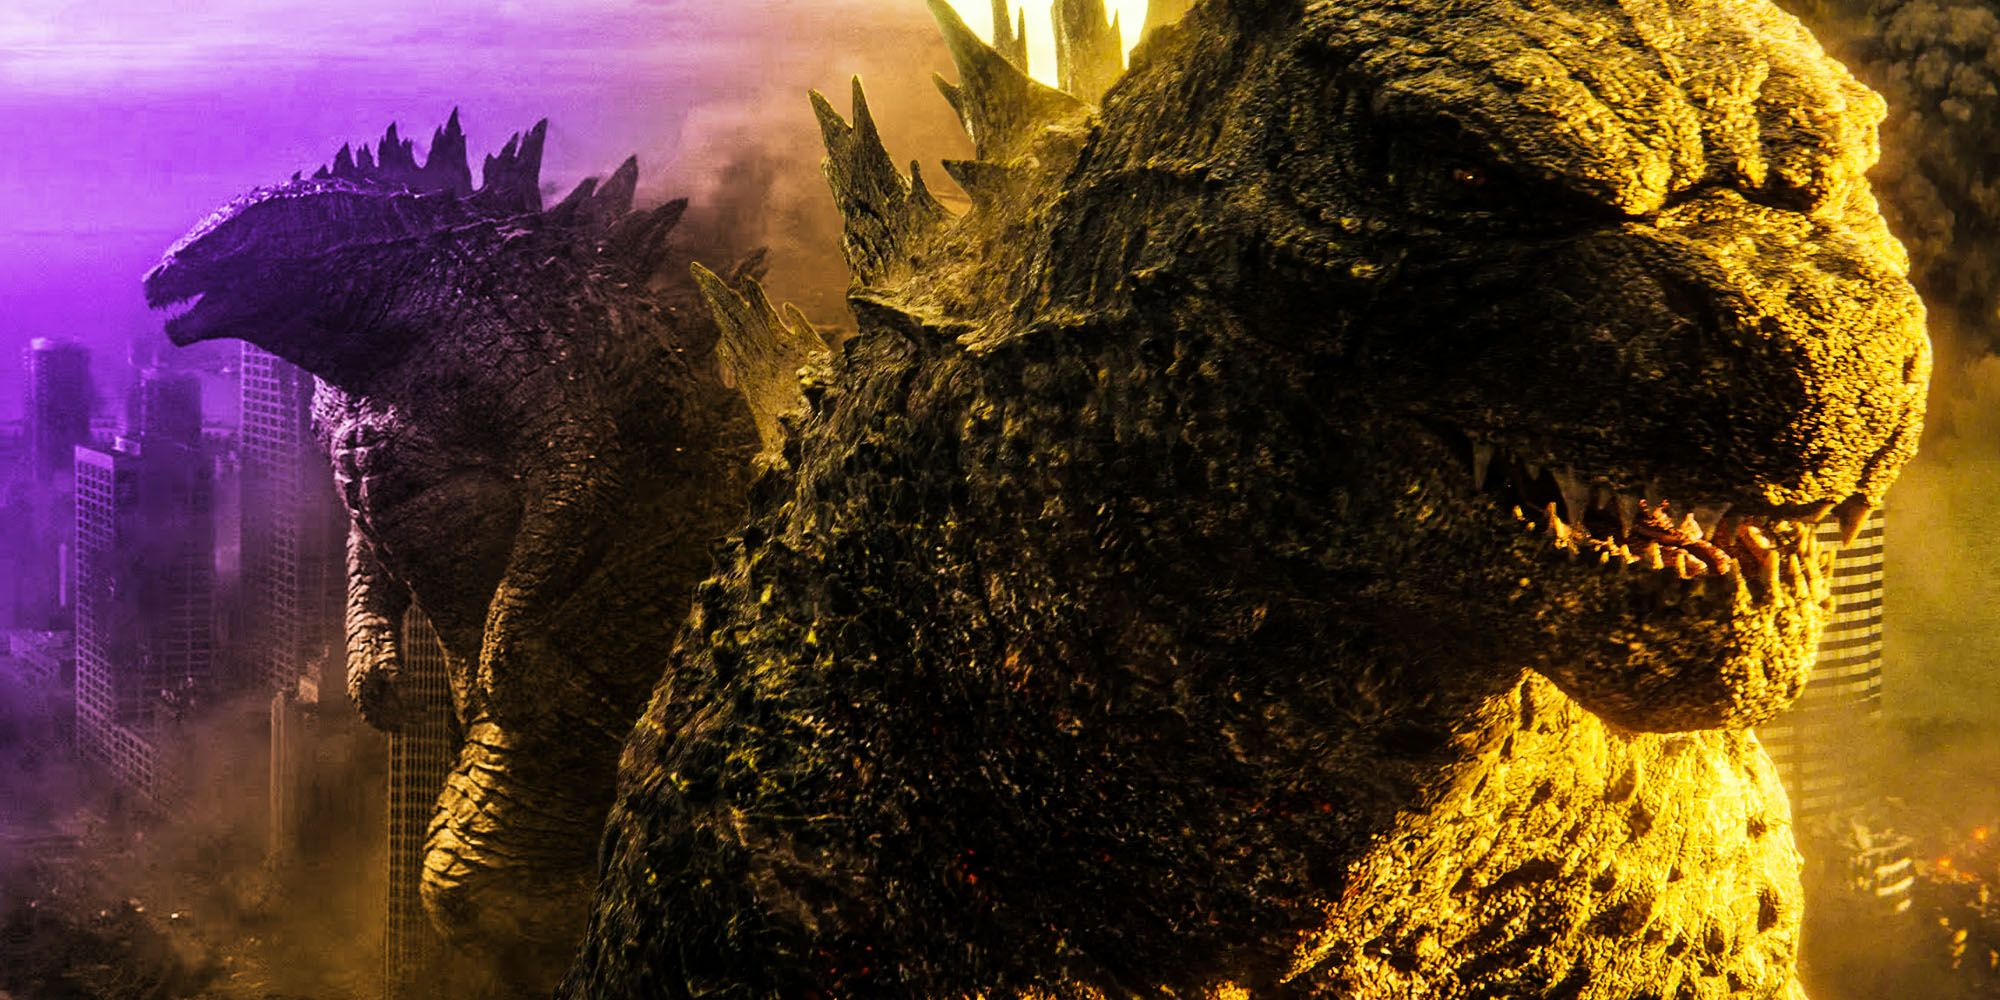 GvK Improves A Godzilla Issue From The First Two Movies